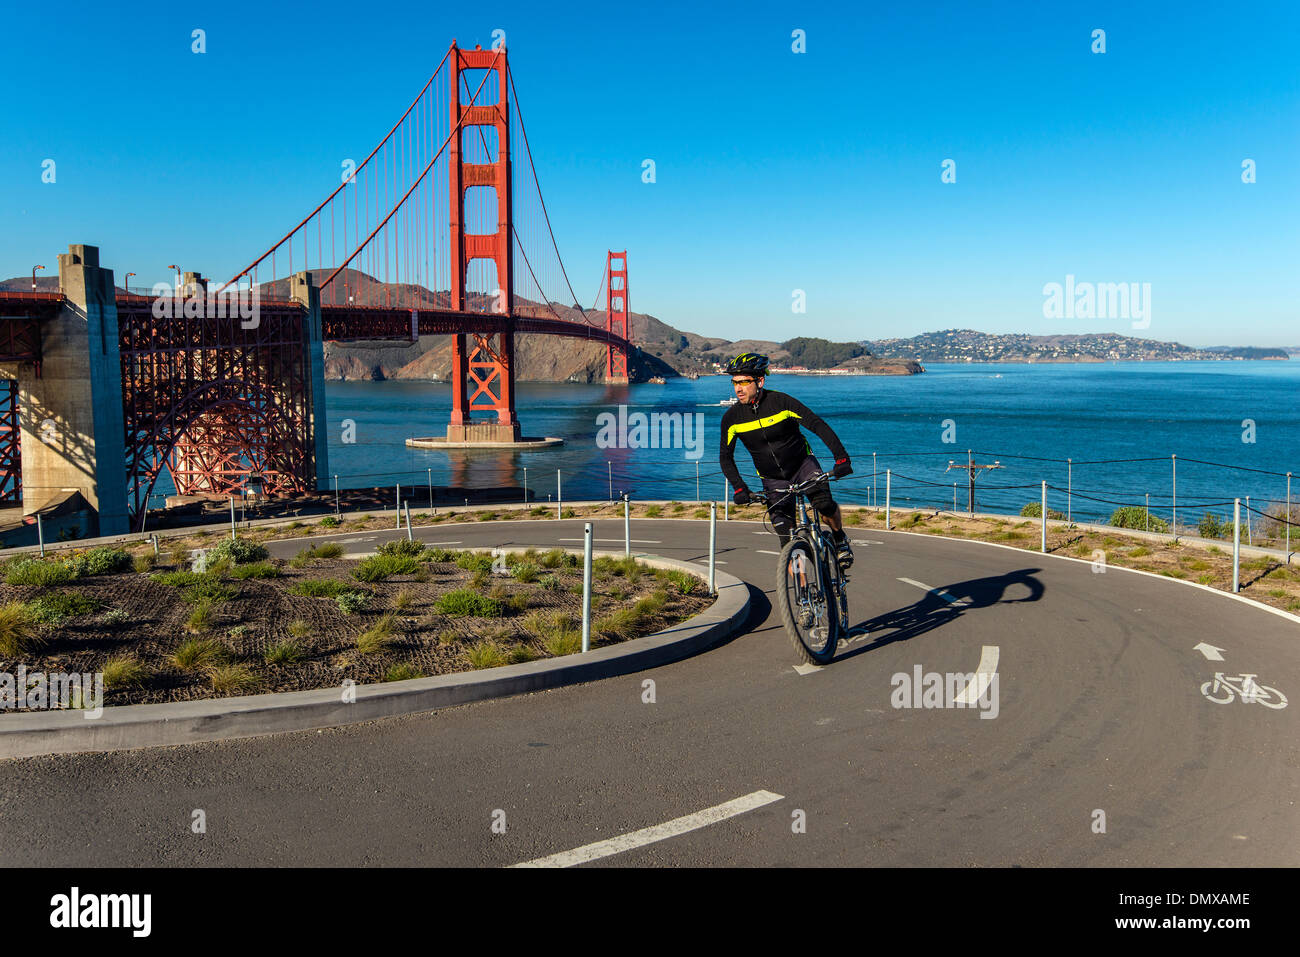 Cyclist riding his mountain bike on a bike lane with Golden gate suspension bridge behind, San Francisco, California, USA - Stock Image